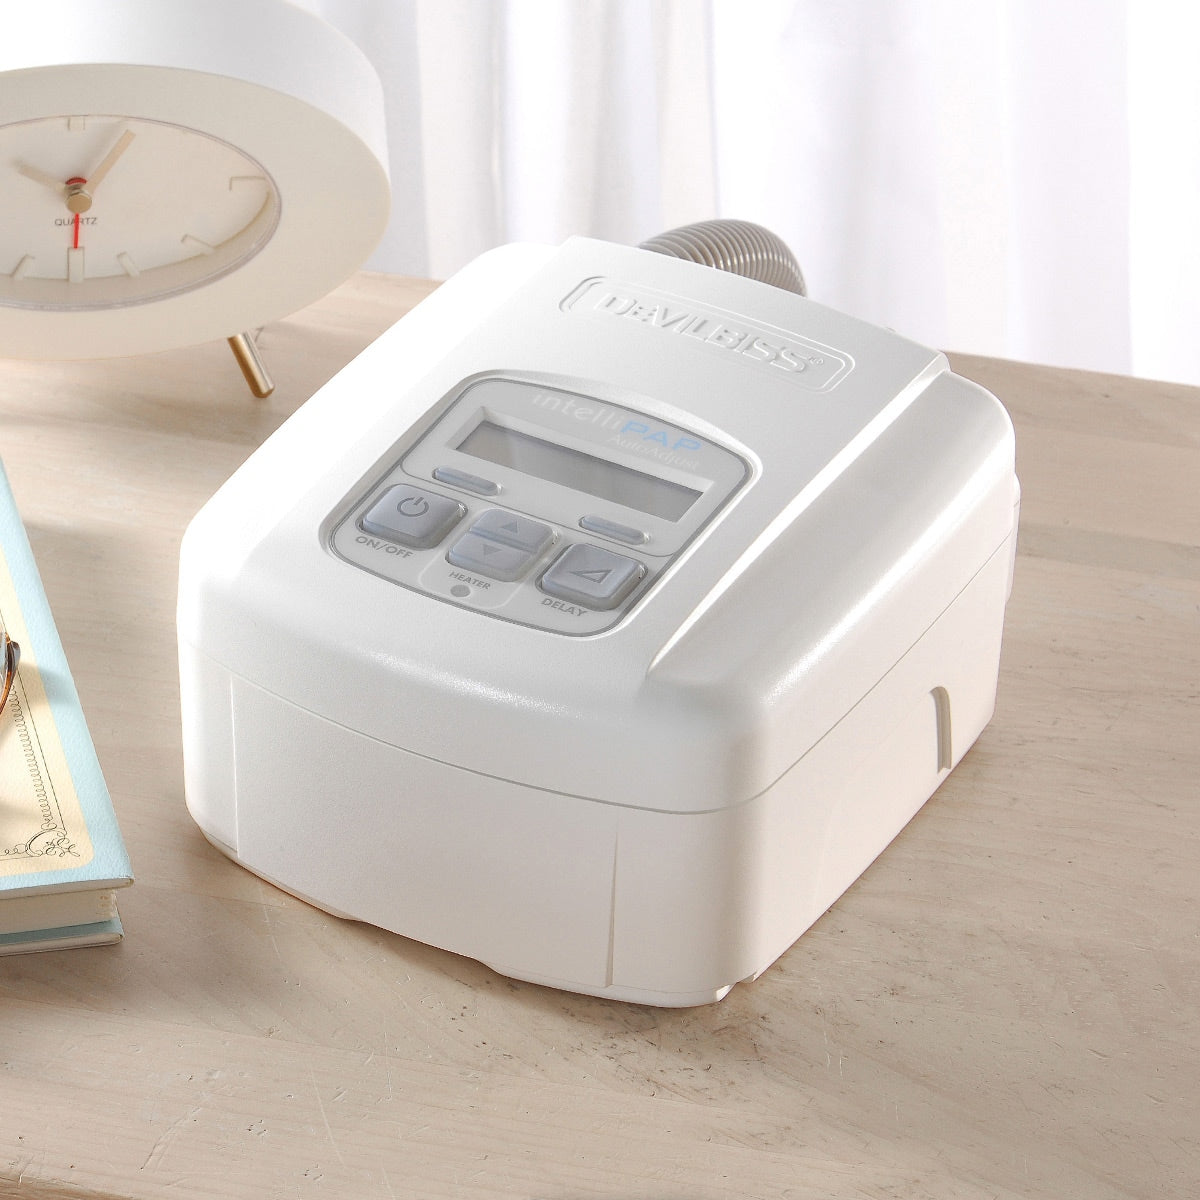 IntelliPAP AutoAdjust Travel Auto-CPAP Machine Package on top of table